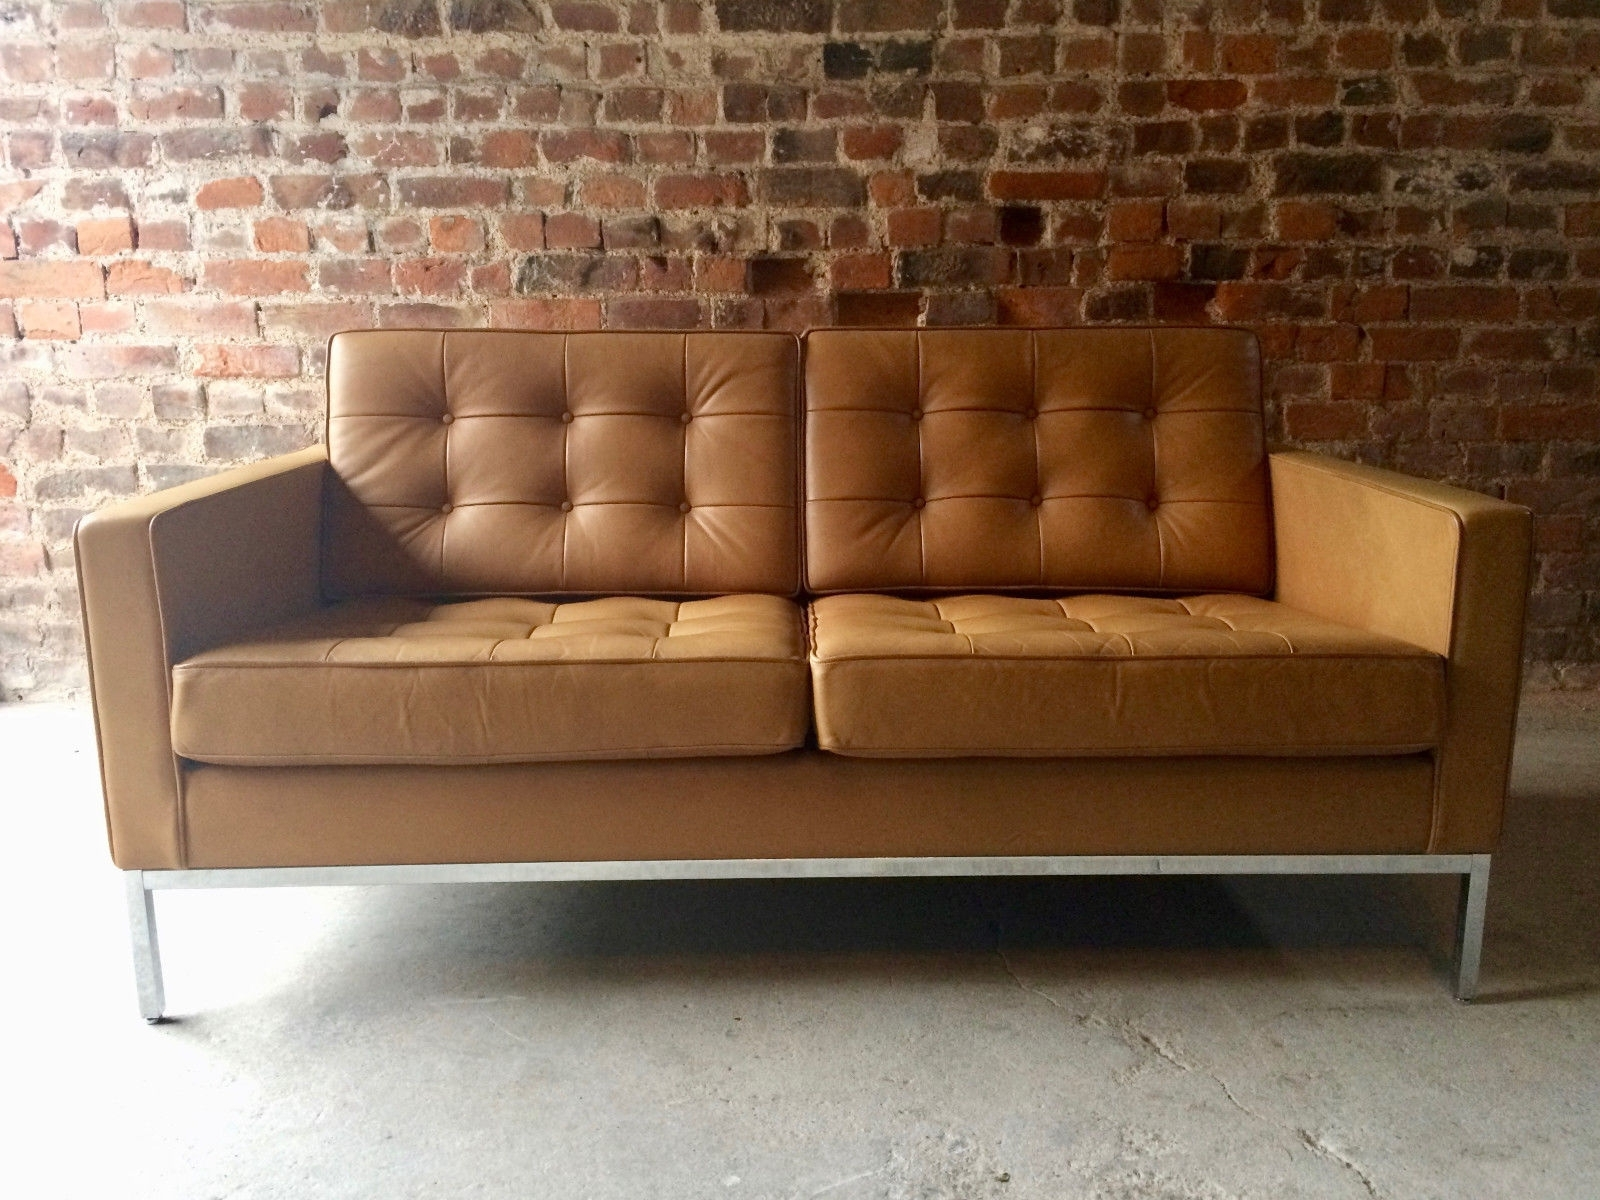 Vintage 2 Seater Leather Sofaflorence Knoll For Knoll For Sale With Regard To Most Recently Released Florence Large Sofas (View 17 of 20)